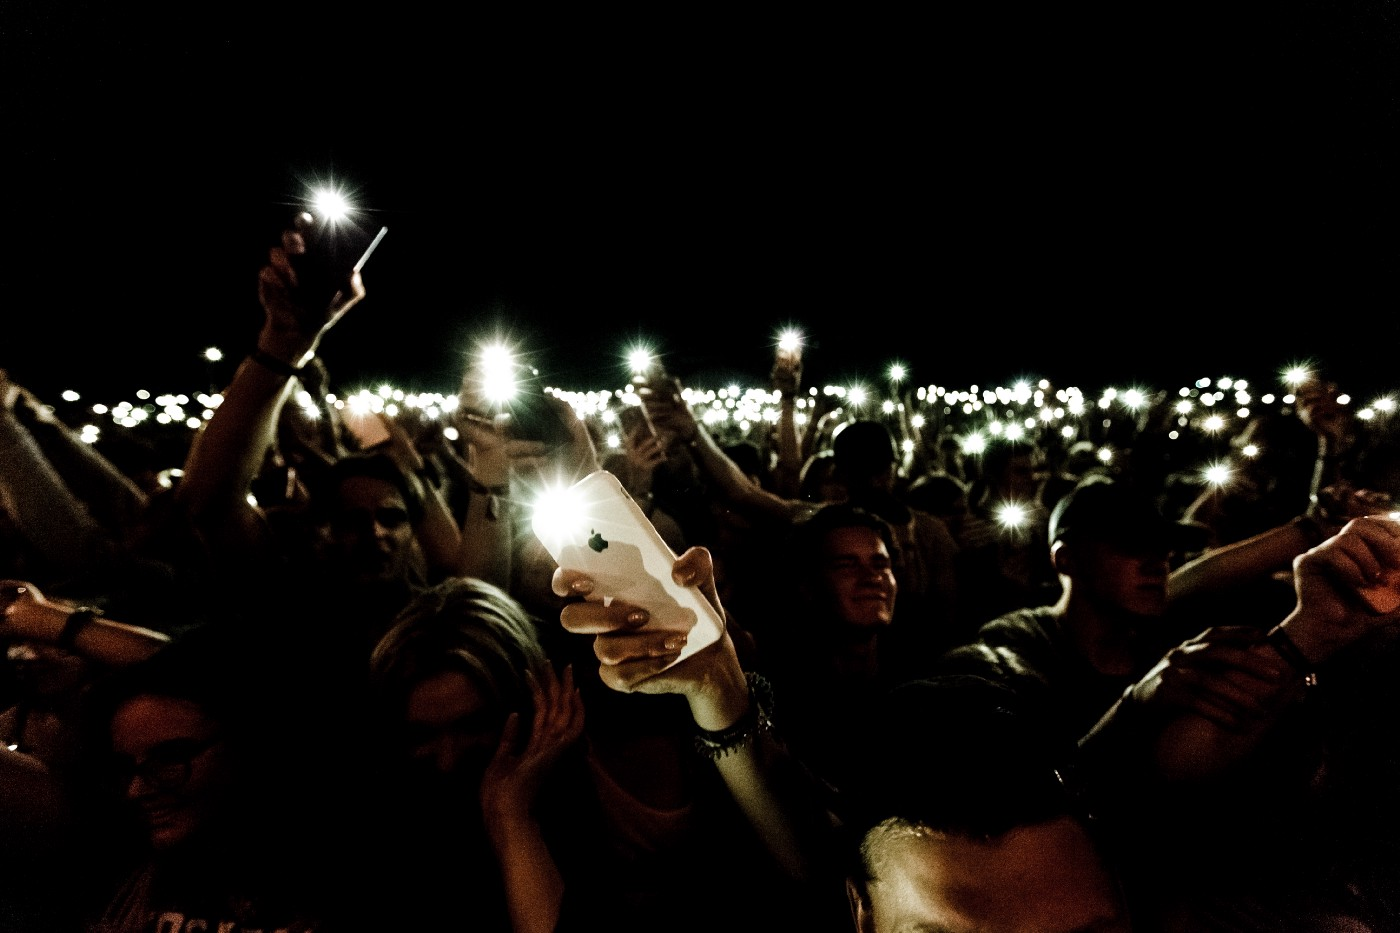 People hold up their phones with their flashlights on at a concert.